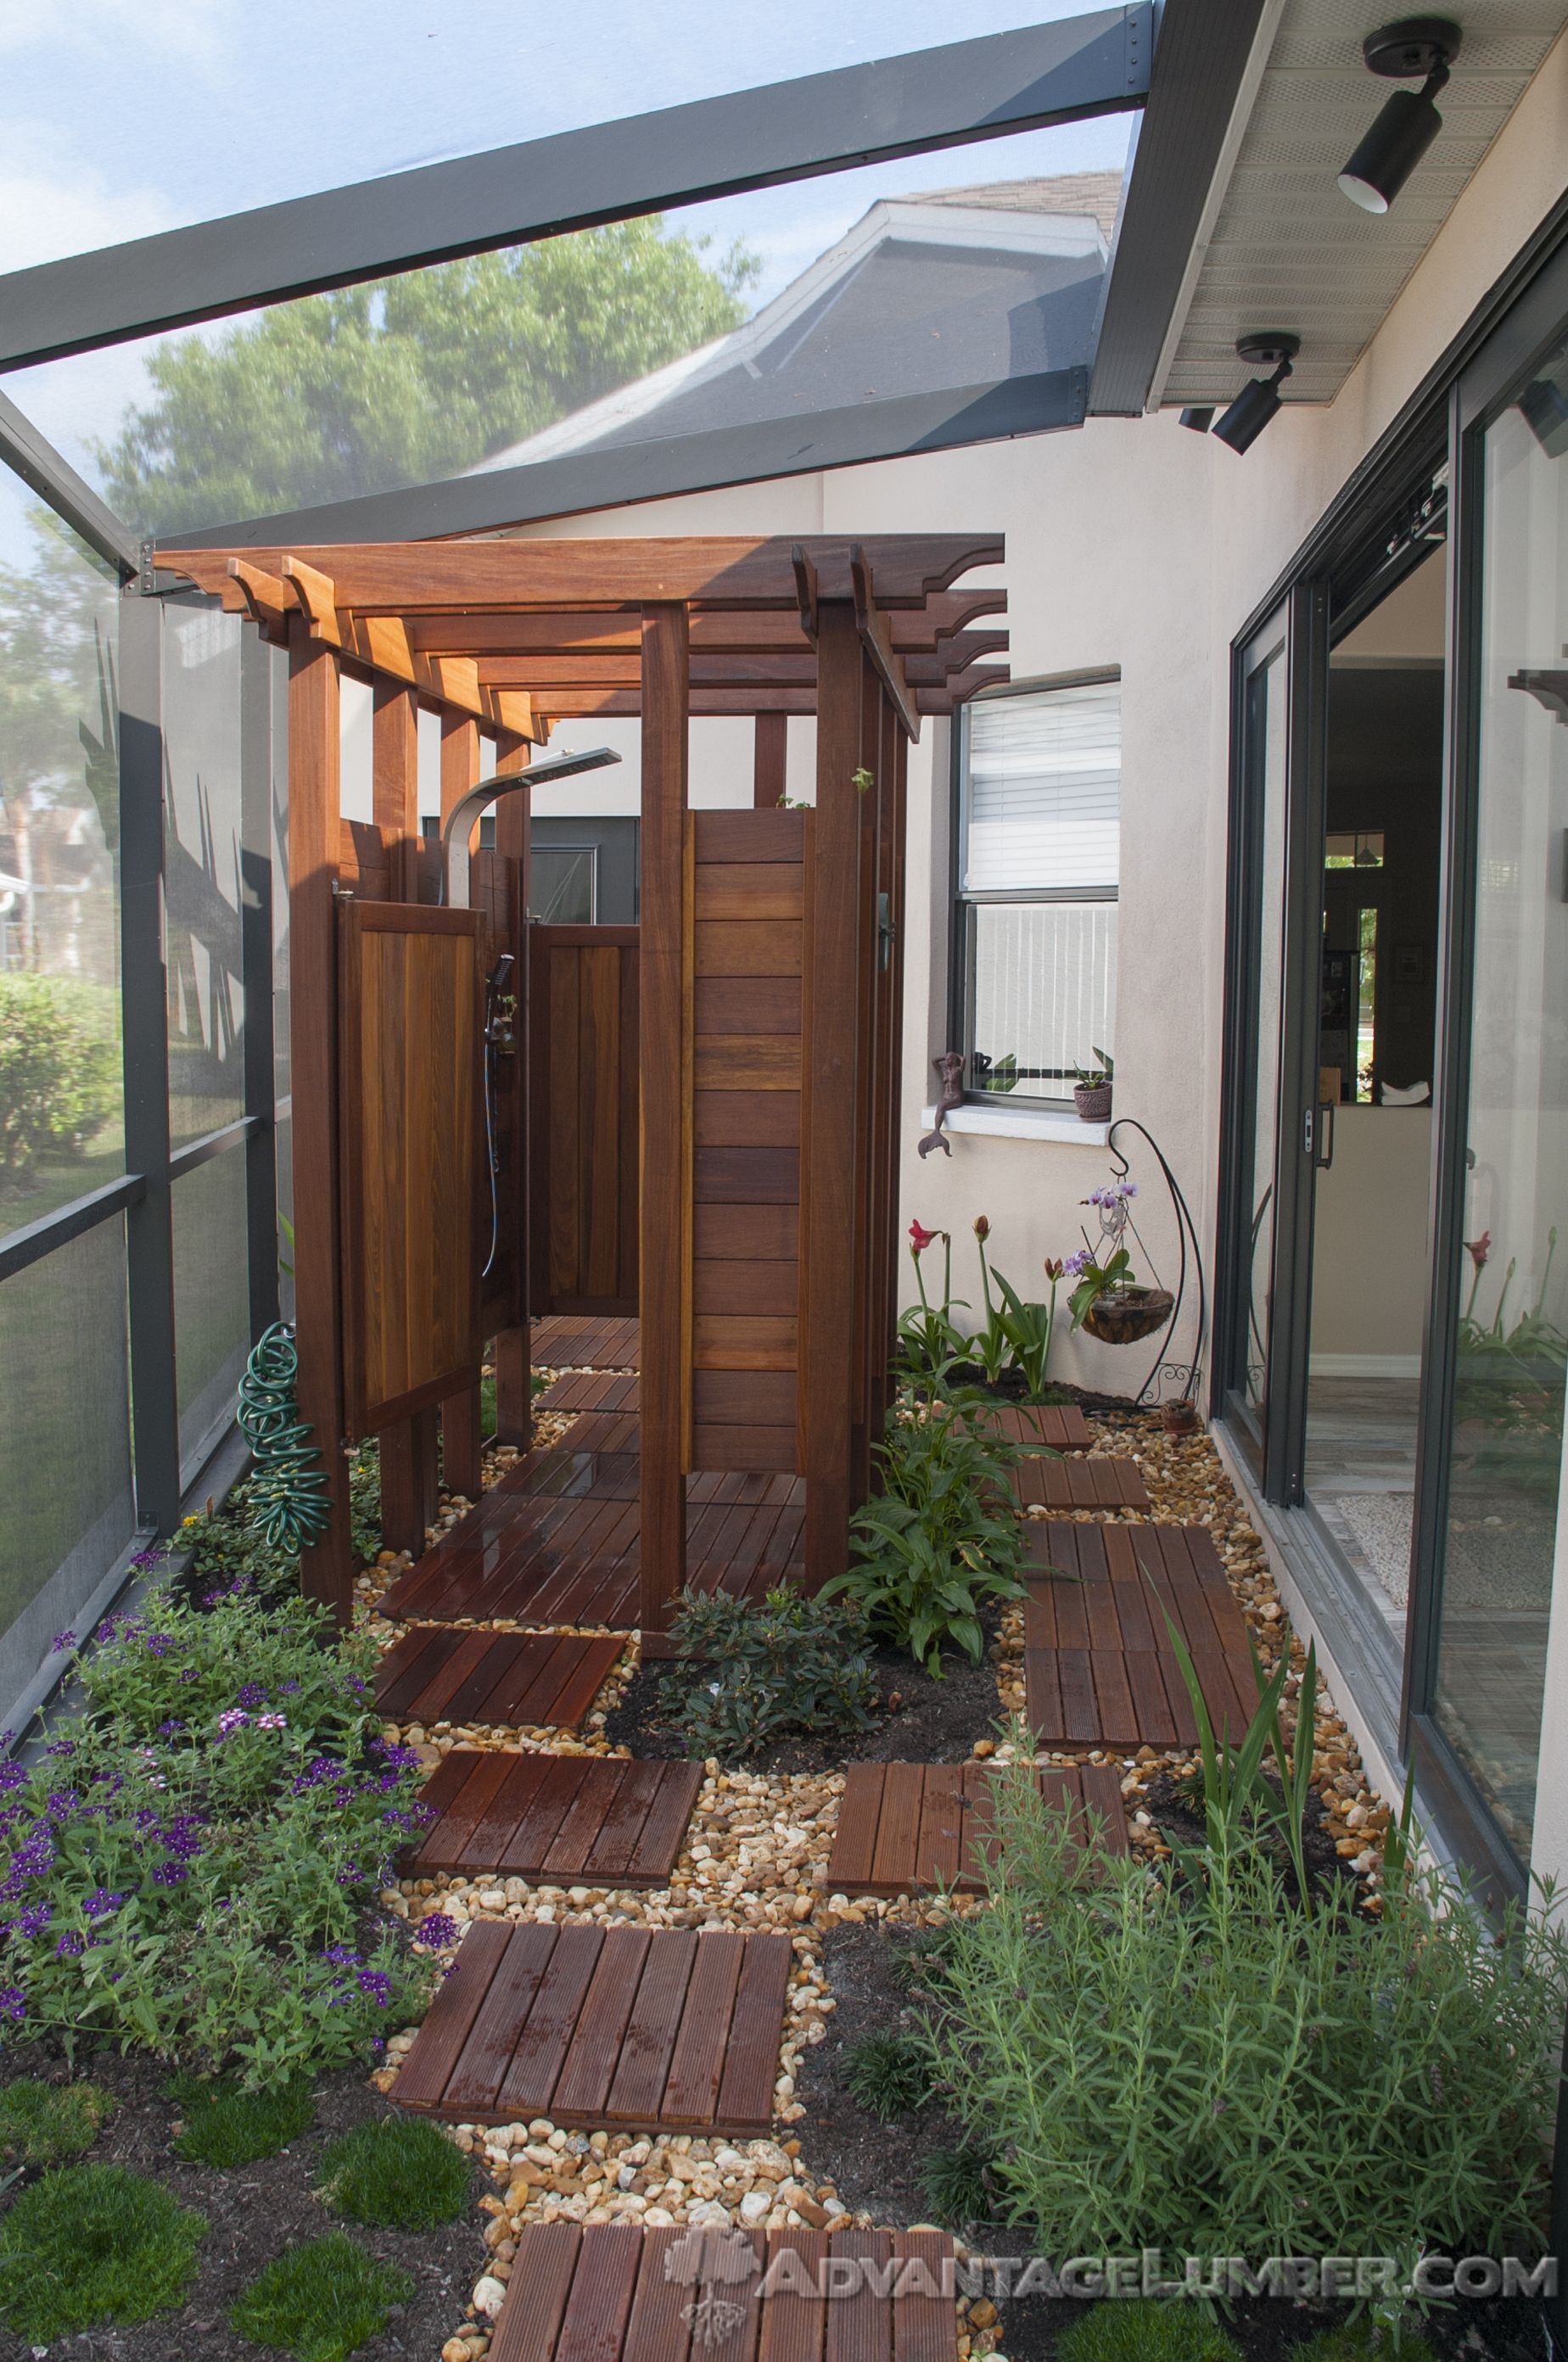 14 Design Ideas For An Exhilarating Outdoor Shower Enhance An